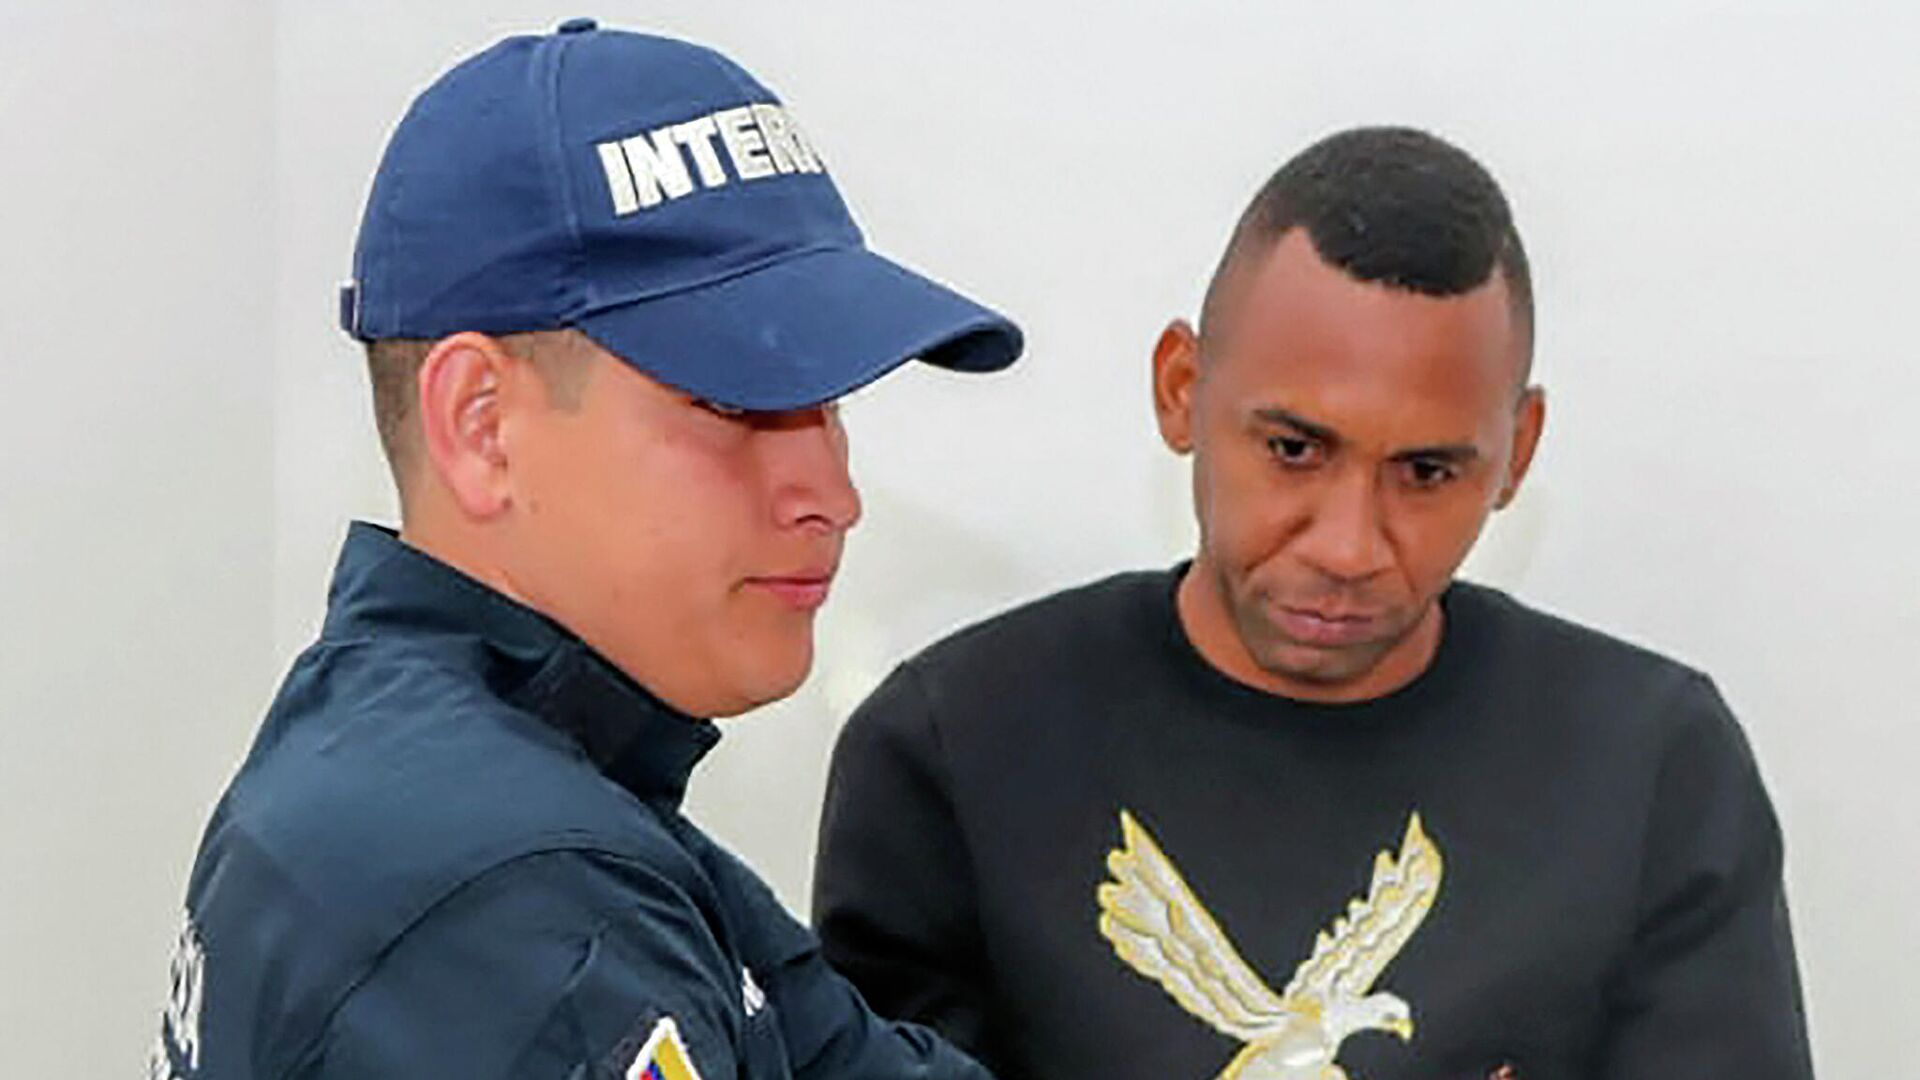 Handout picture released by the Colombian Police showing Colombia's former national football team player Jhon Viafara handcuffed before his extradition to the United States, in Bogota, on January 23, 2020. - Colombian former national football team player Jhon Viafara was extradited to the United States on January 23, 2020, where he is required after being accused of drug trafficking. Viafara has charges for manufacture and distribution of cocaine to the United States. (Photo by HO / Colombian Police / AFP) / RESTRICTED TO EDITORIAL USE - MANDATORY CREDIT AFP PHOTO / COLOMBIAN POLICE - NO MARKETING NO ADVERTISING CAMPAIGNS - DISTRIBUTED AS A SERVICE TO CLIENTS - РИА Новости, 1920, 02.04.2021